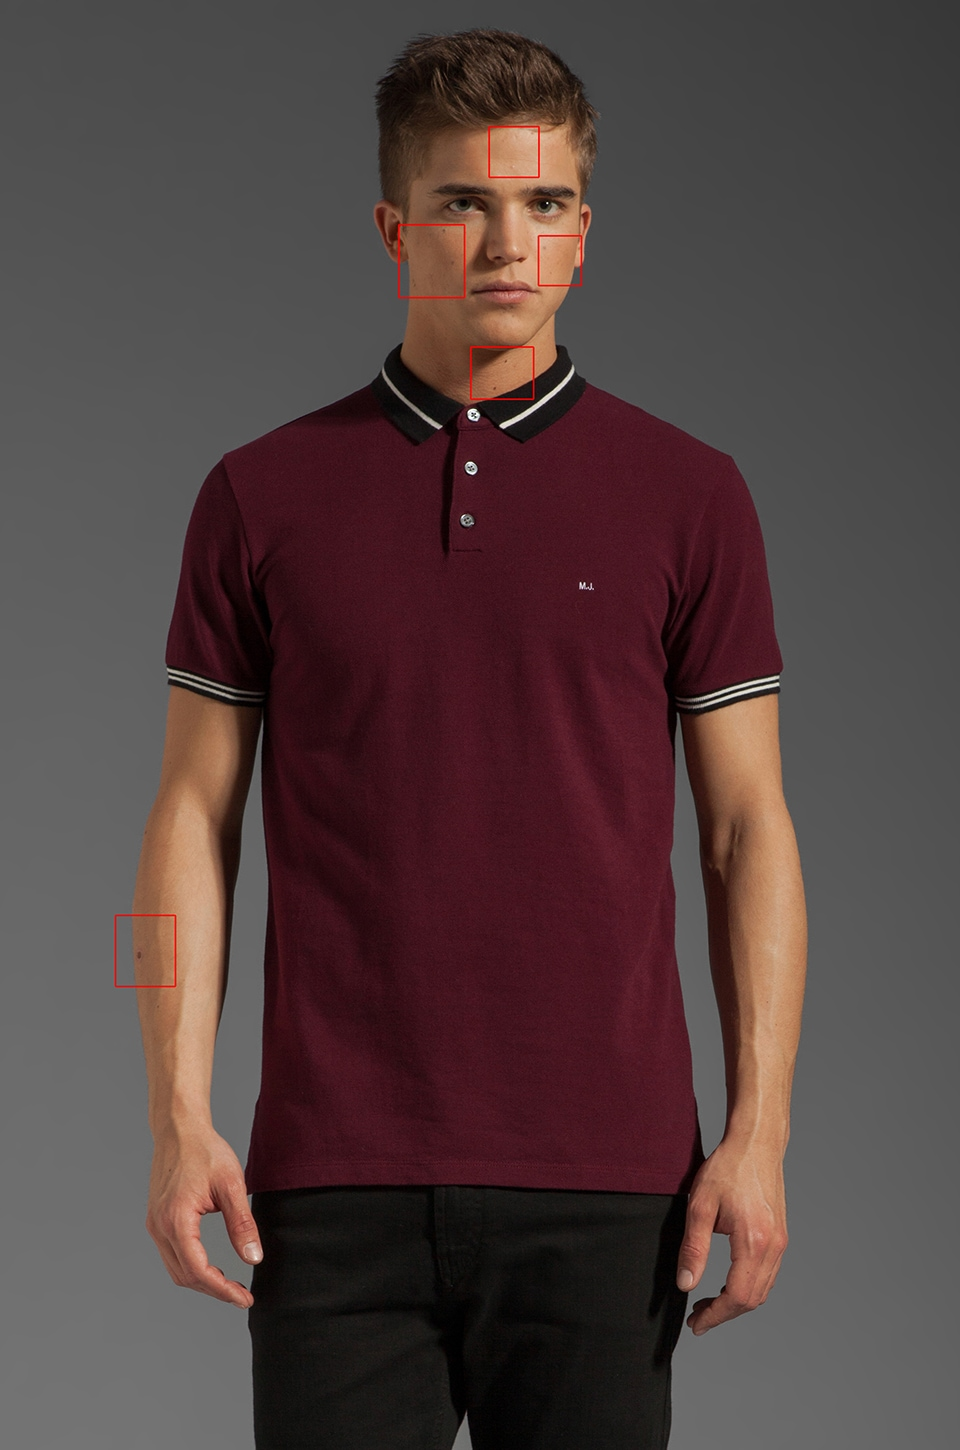 Marc by Marc Jacobs Striped Collar Polo in Madder Carmine